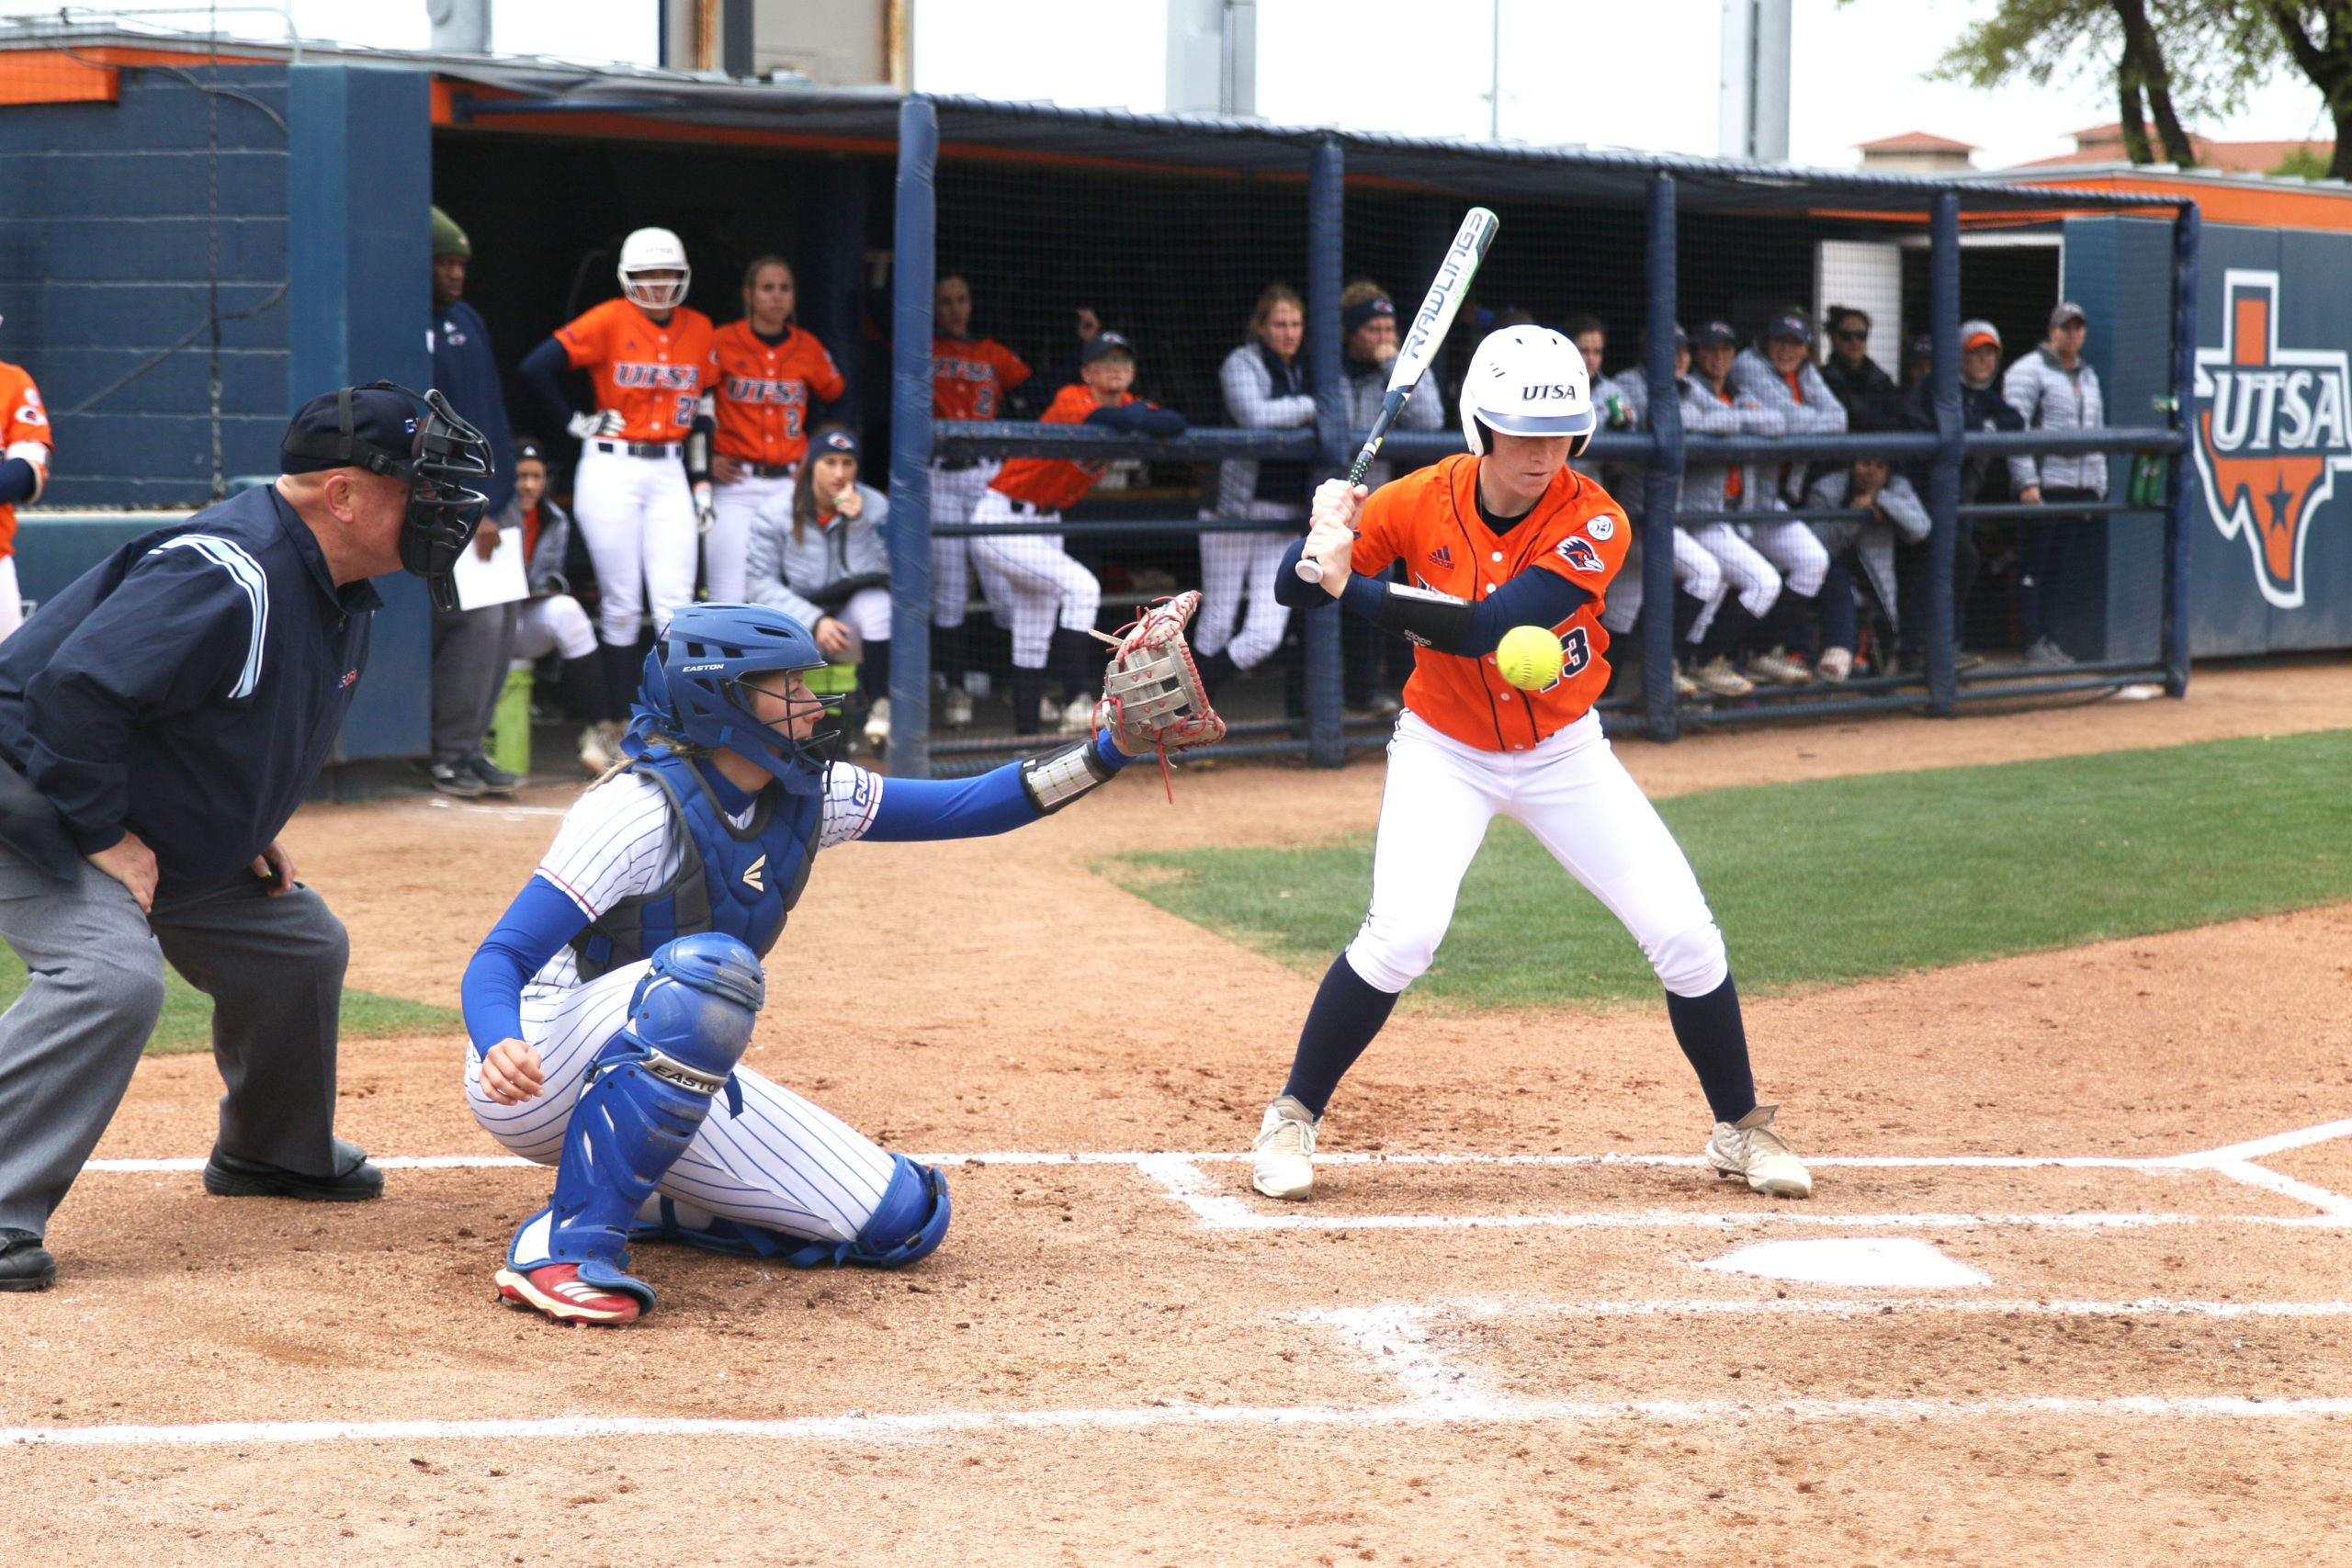 Kindell Reeves bats to gain first base. Emma Reeves/The Paisano